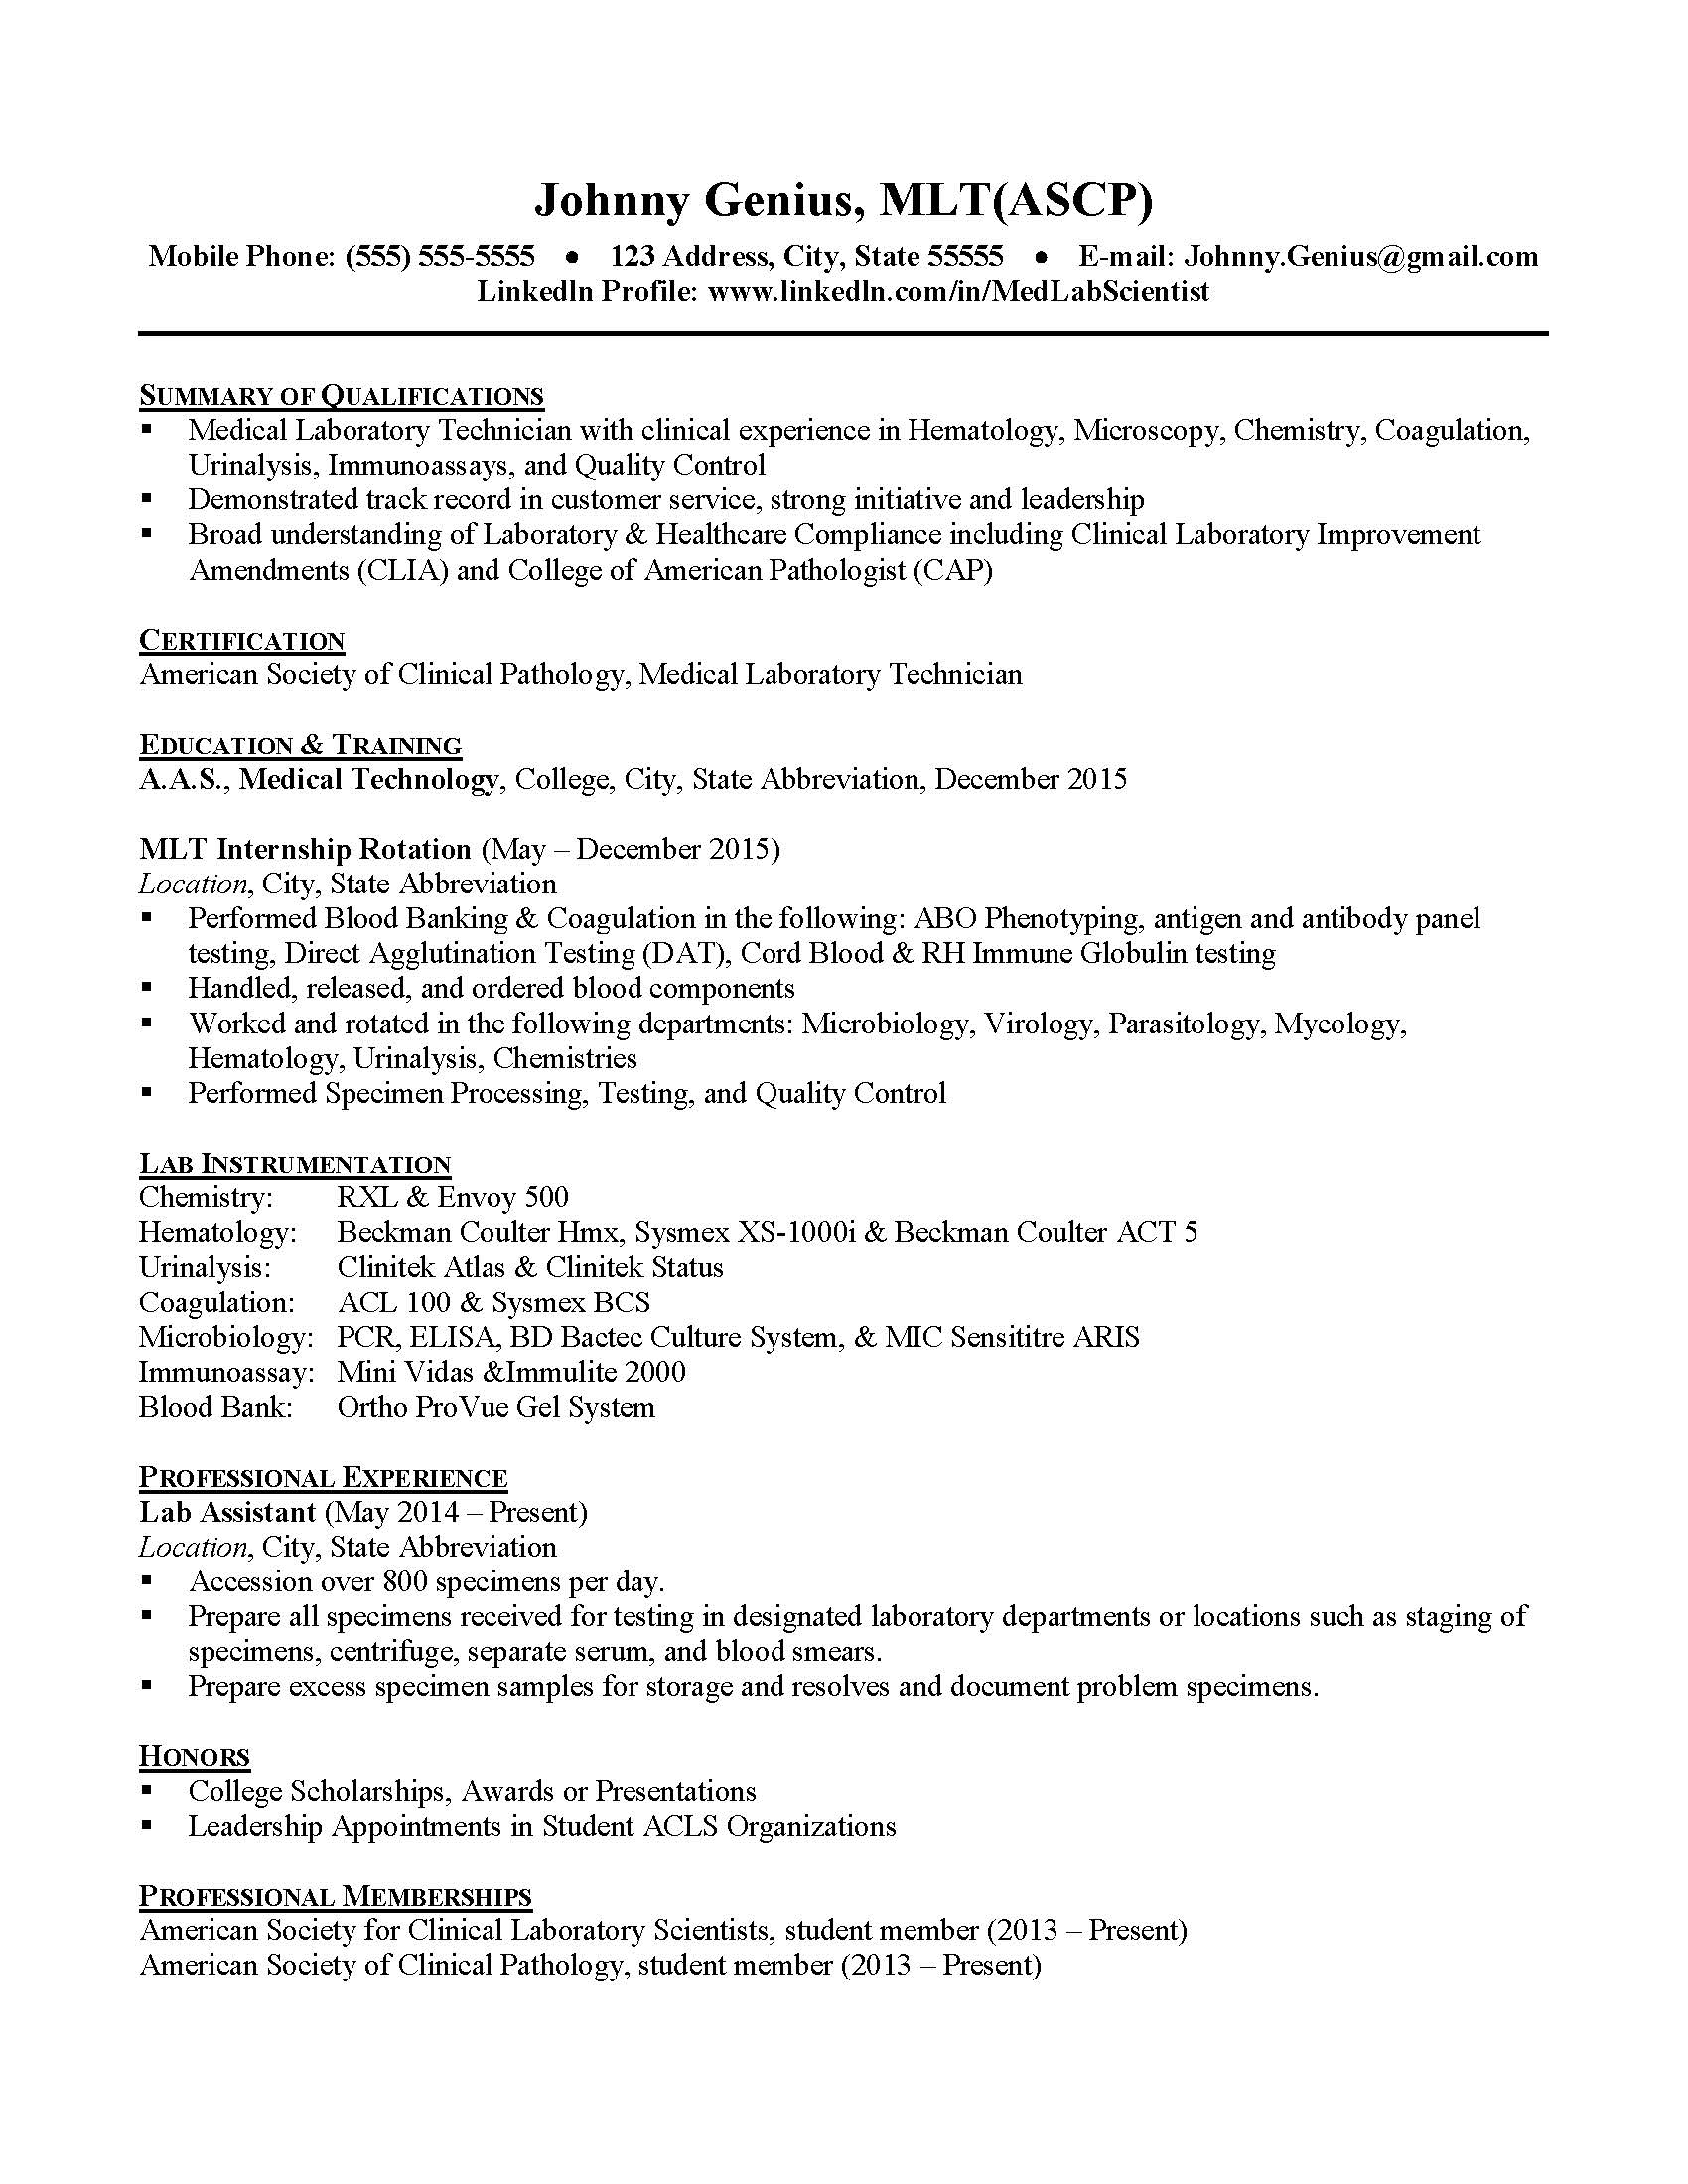 resume strategies for mlt new grad by leslee siirila infographic medical technologist Resume Medical Technologist Resume Fresh Graduate